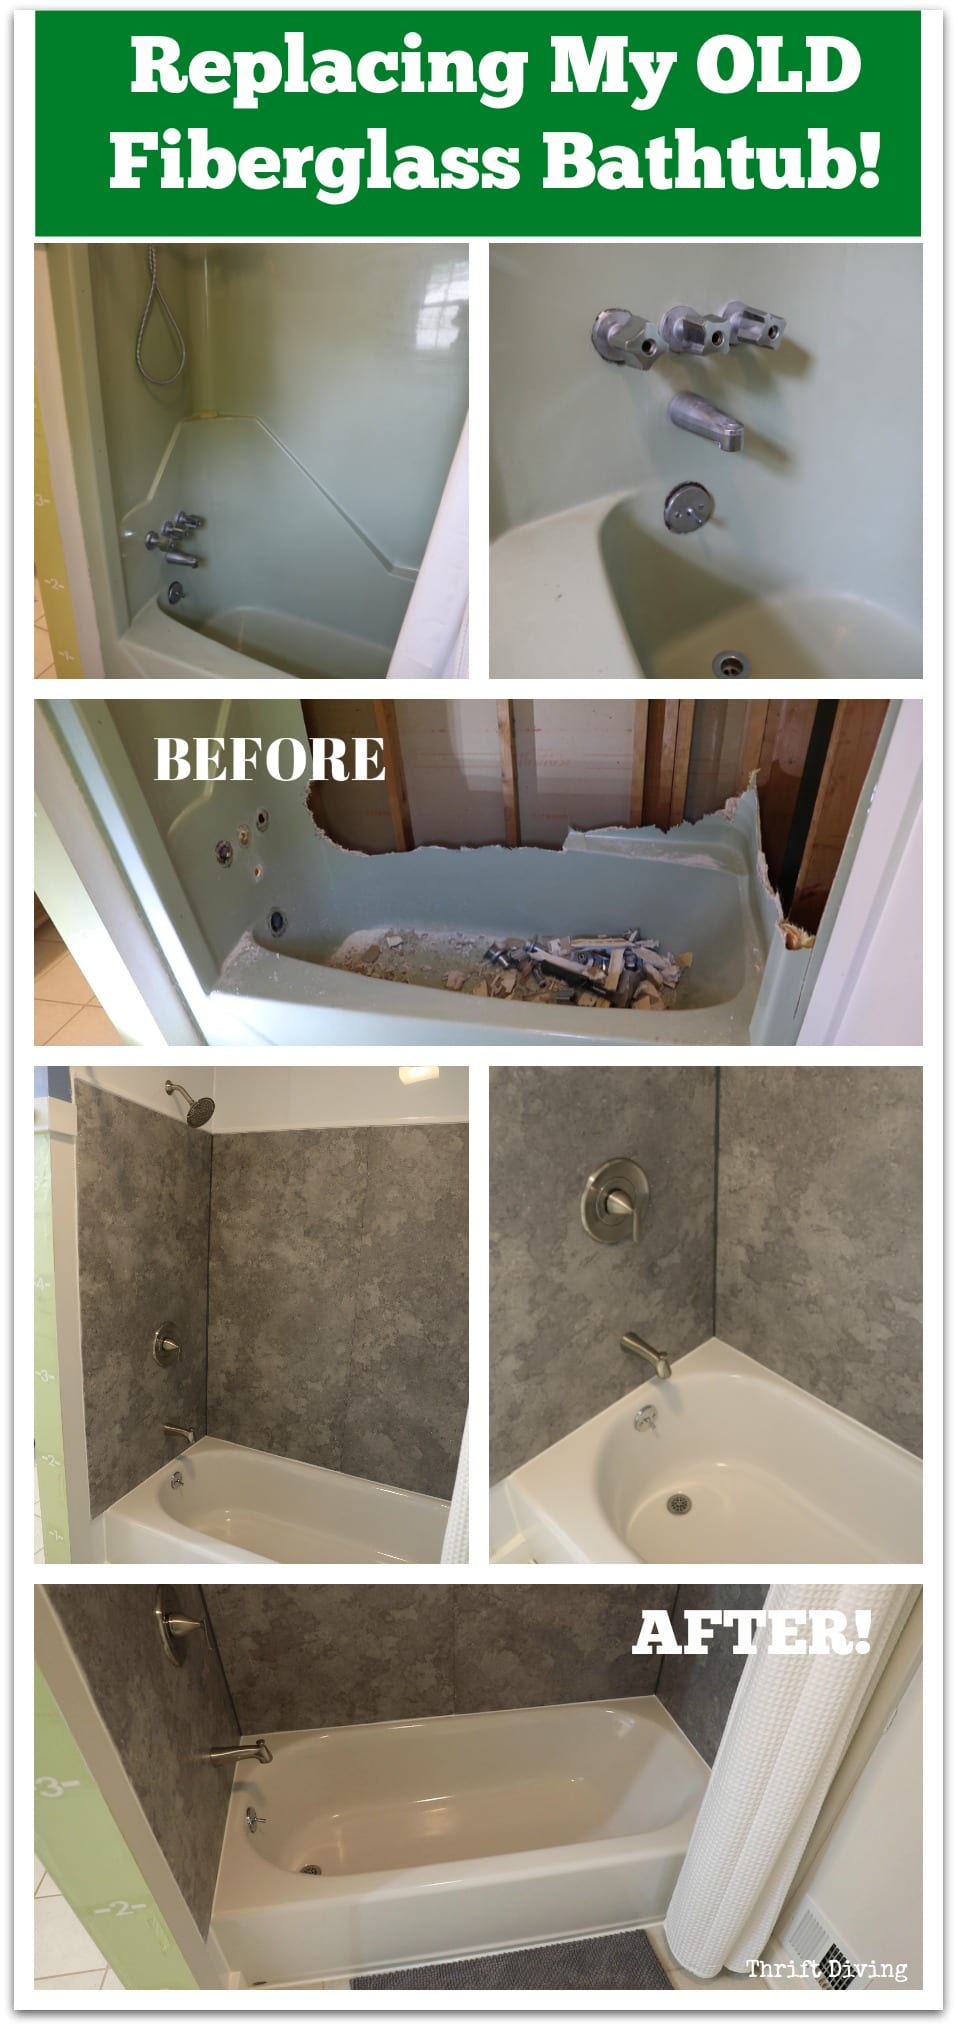 Before After Replacing My Fiberglass Bathtub Bathtub Walls